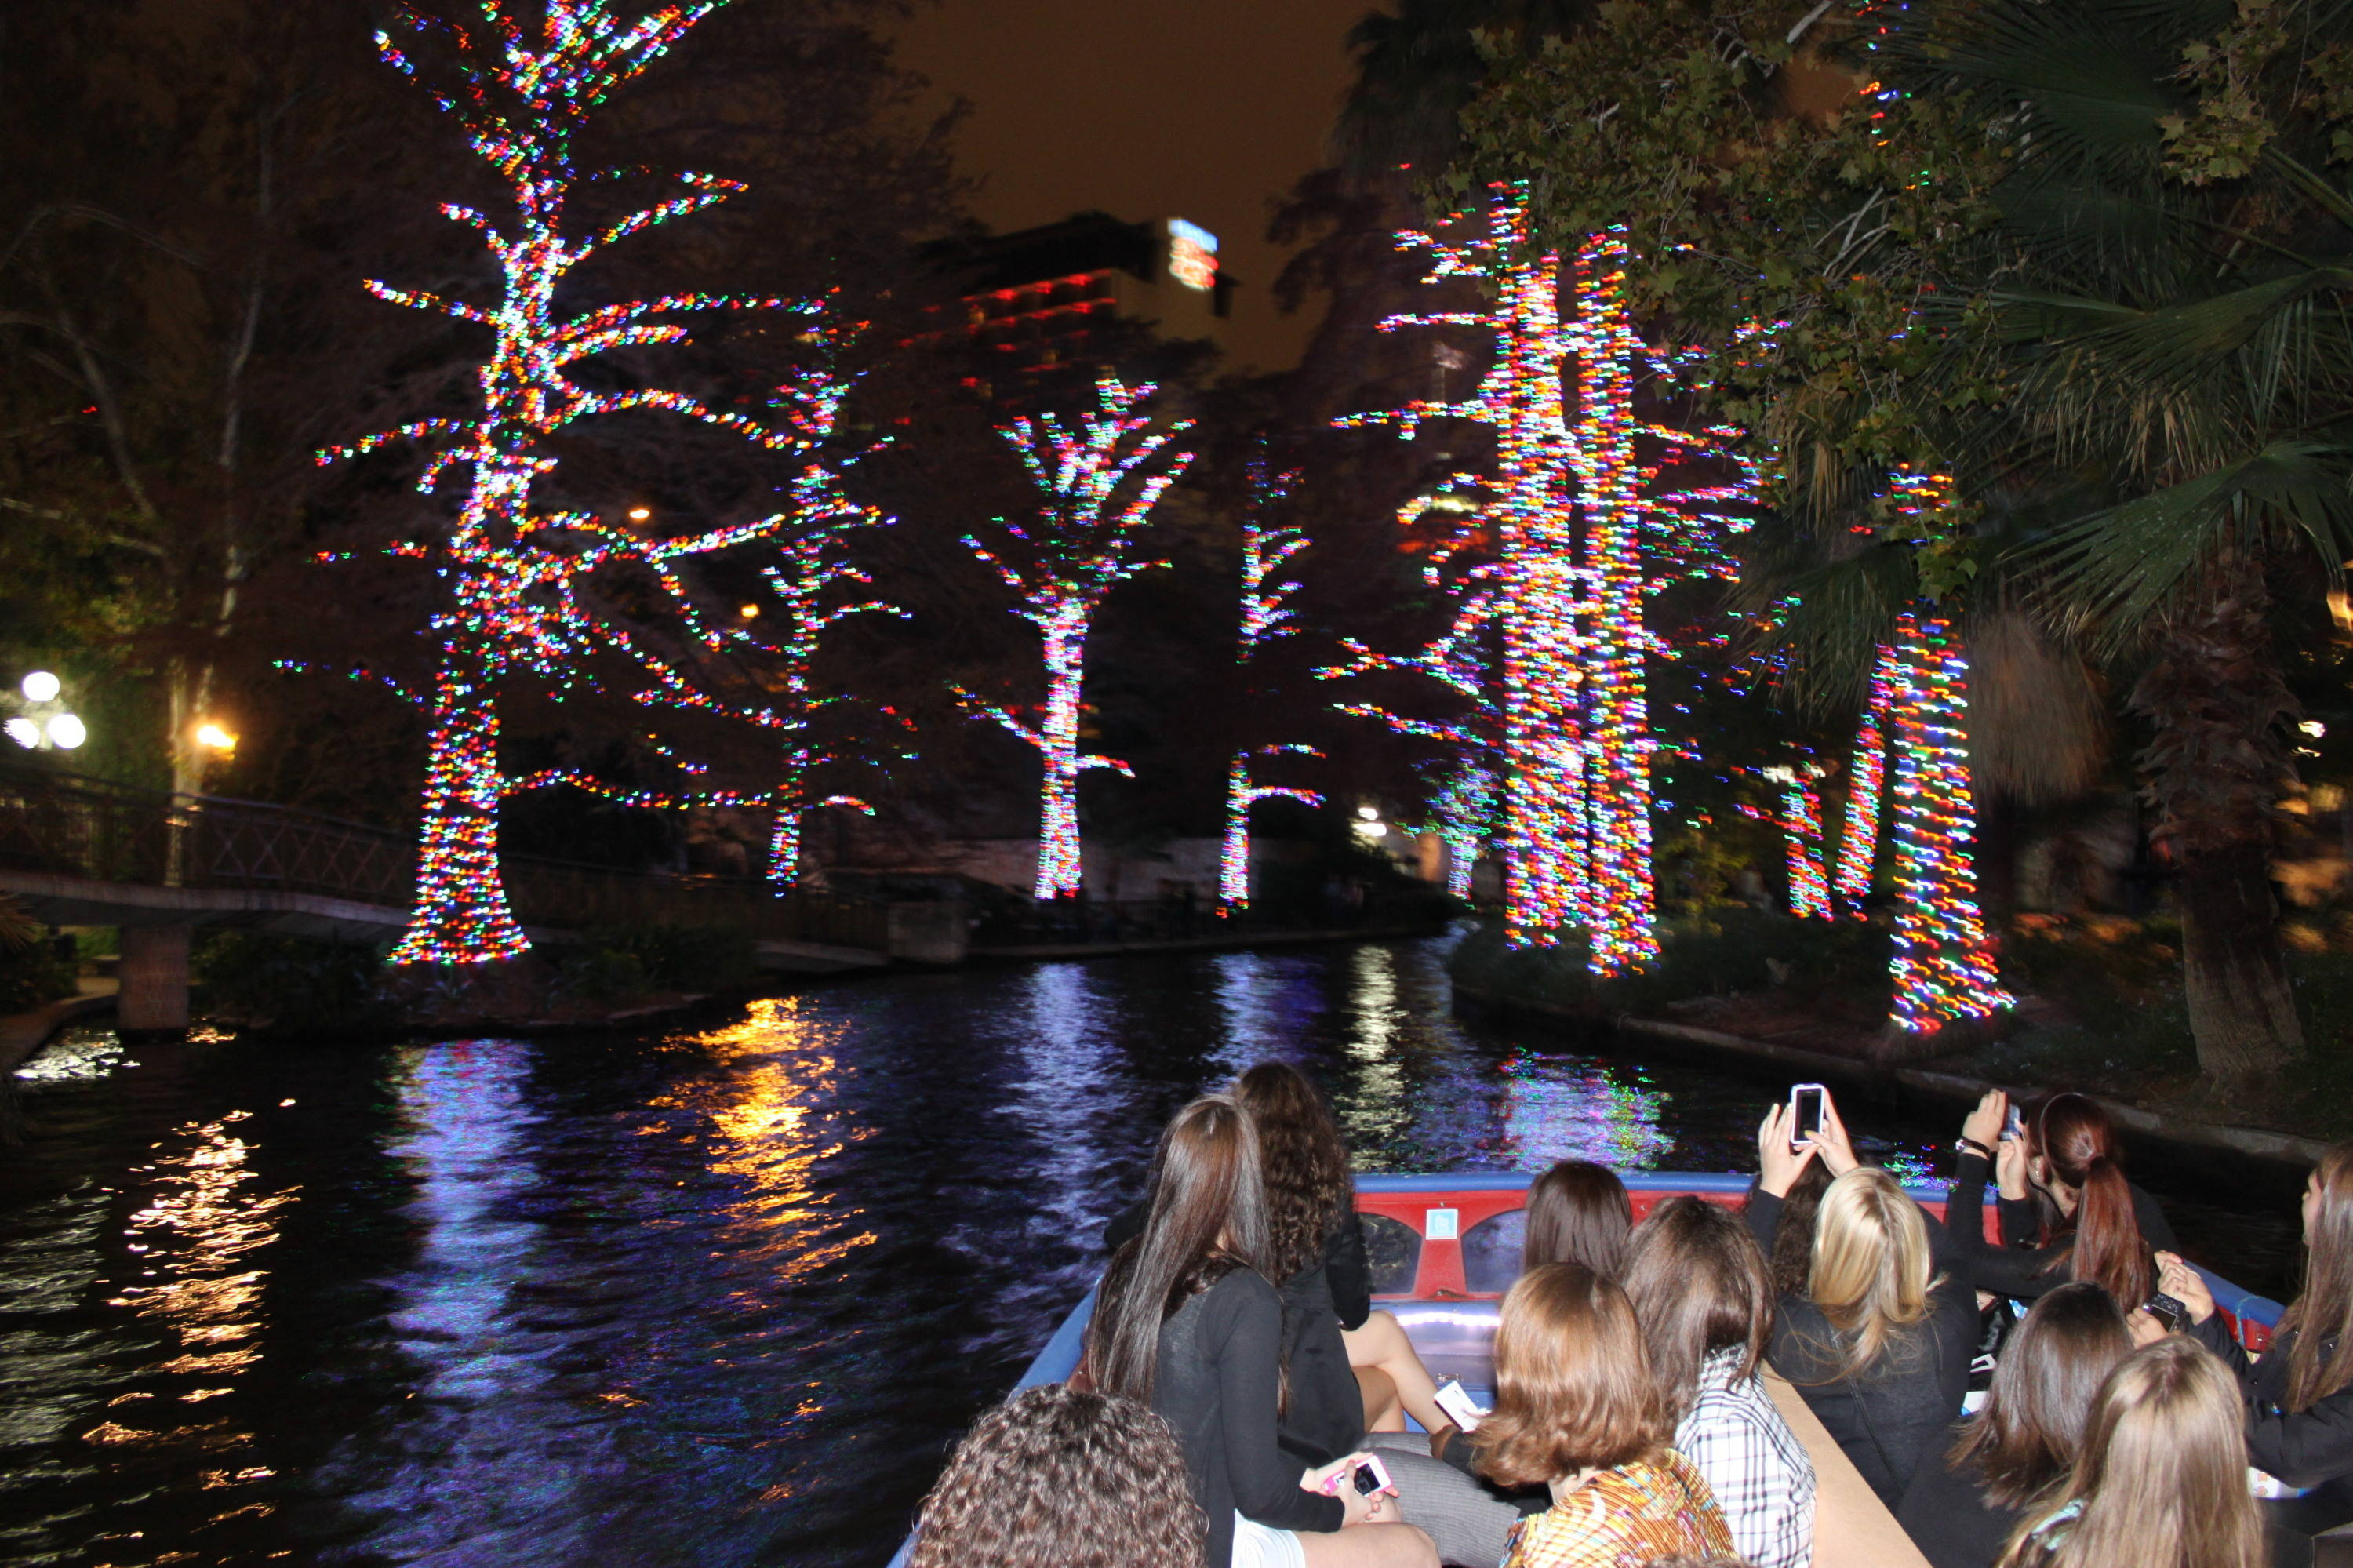 The Seminoles and crew took a quick tour on the river, filled with history, fun facts and a lot of Christmas lights.